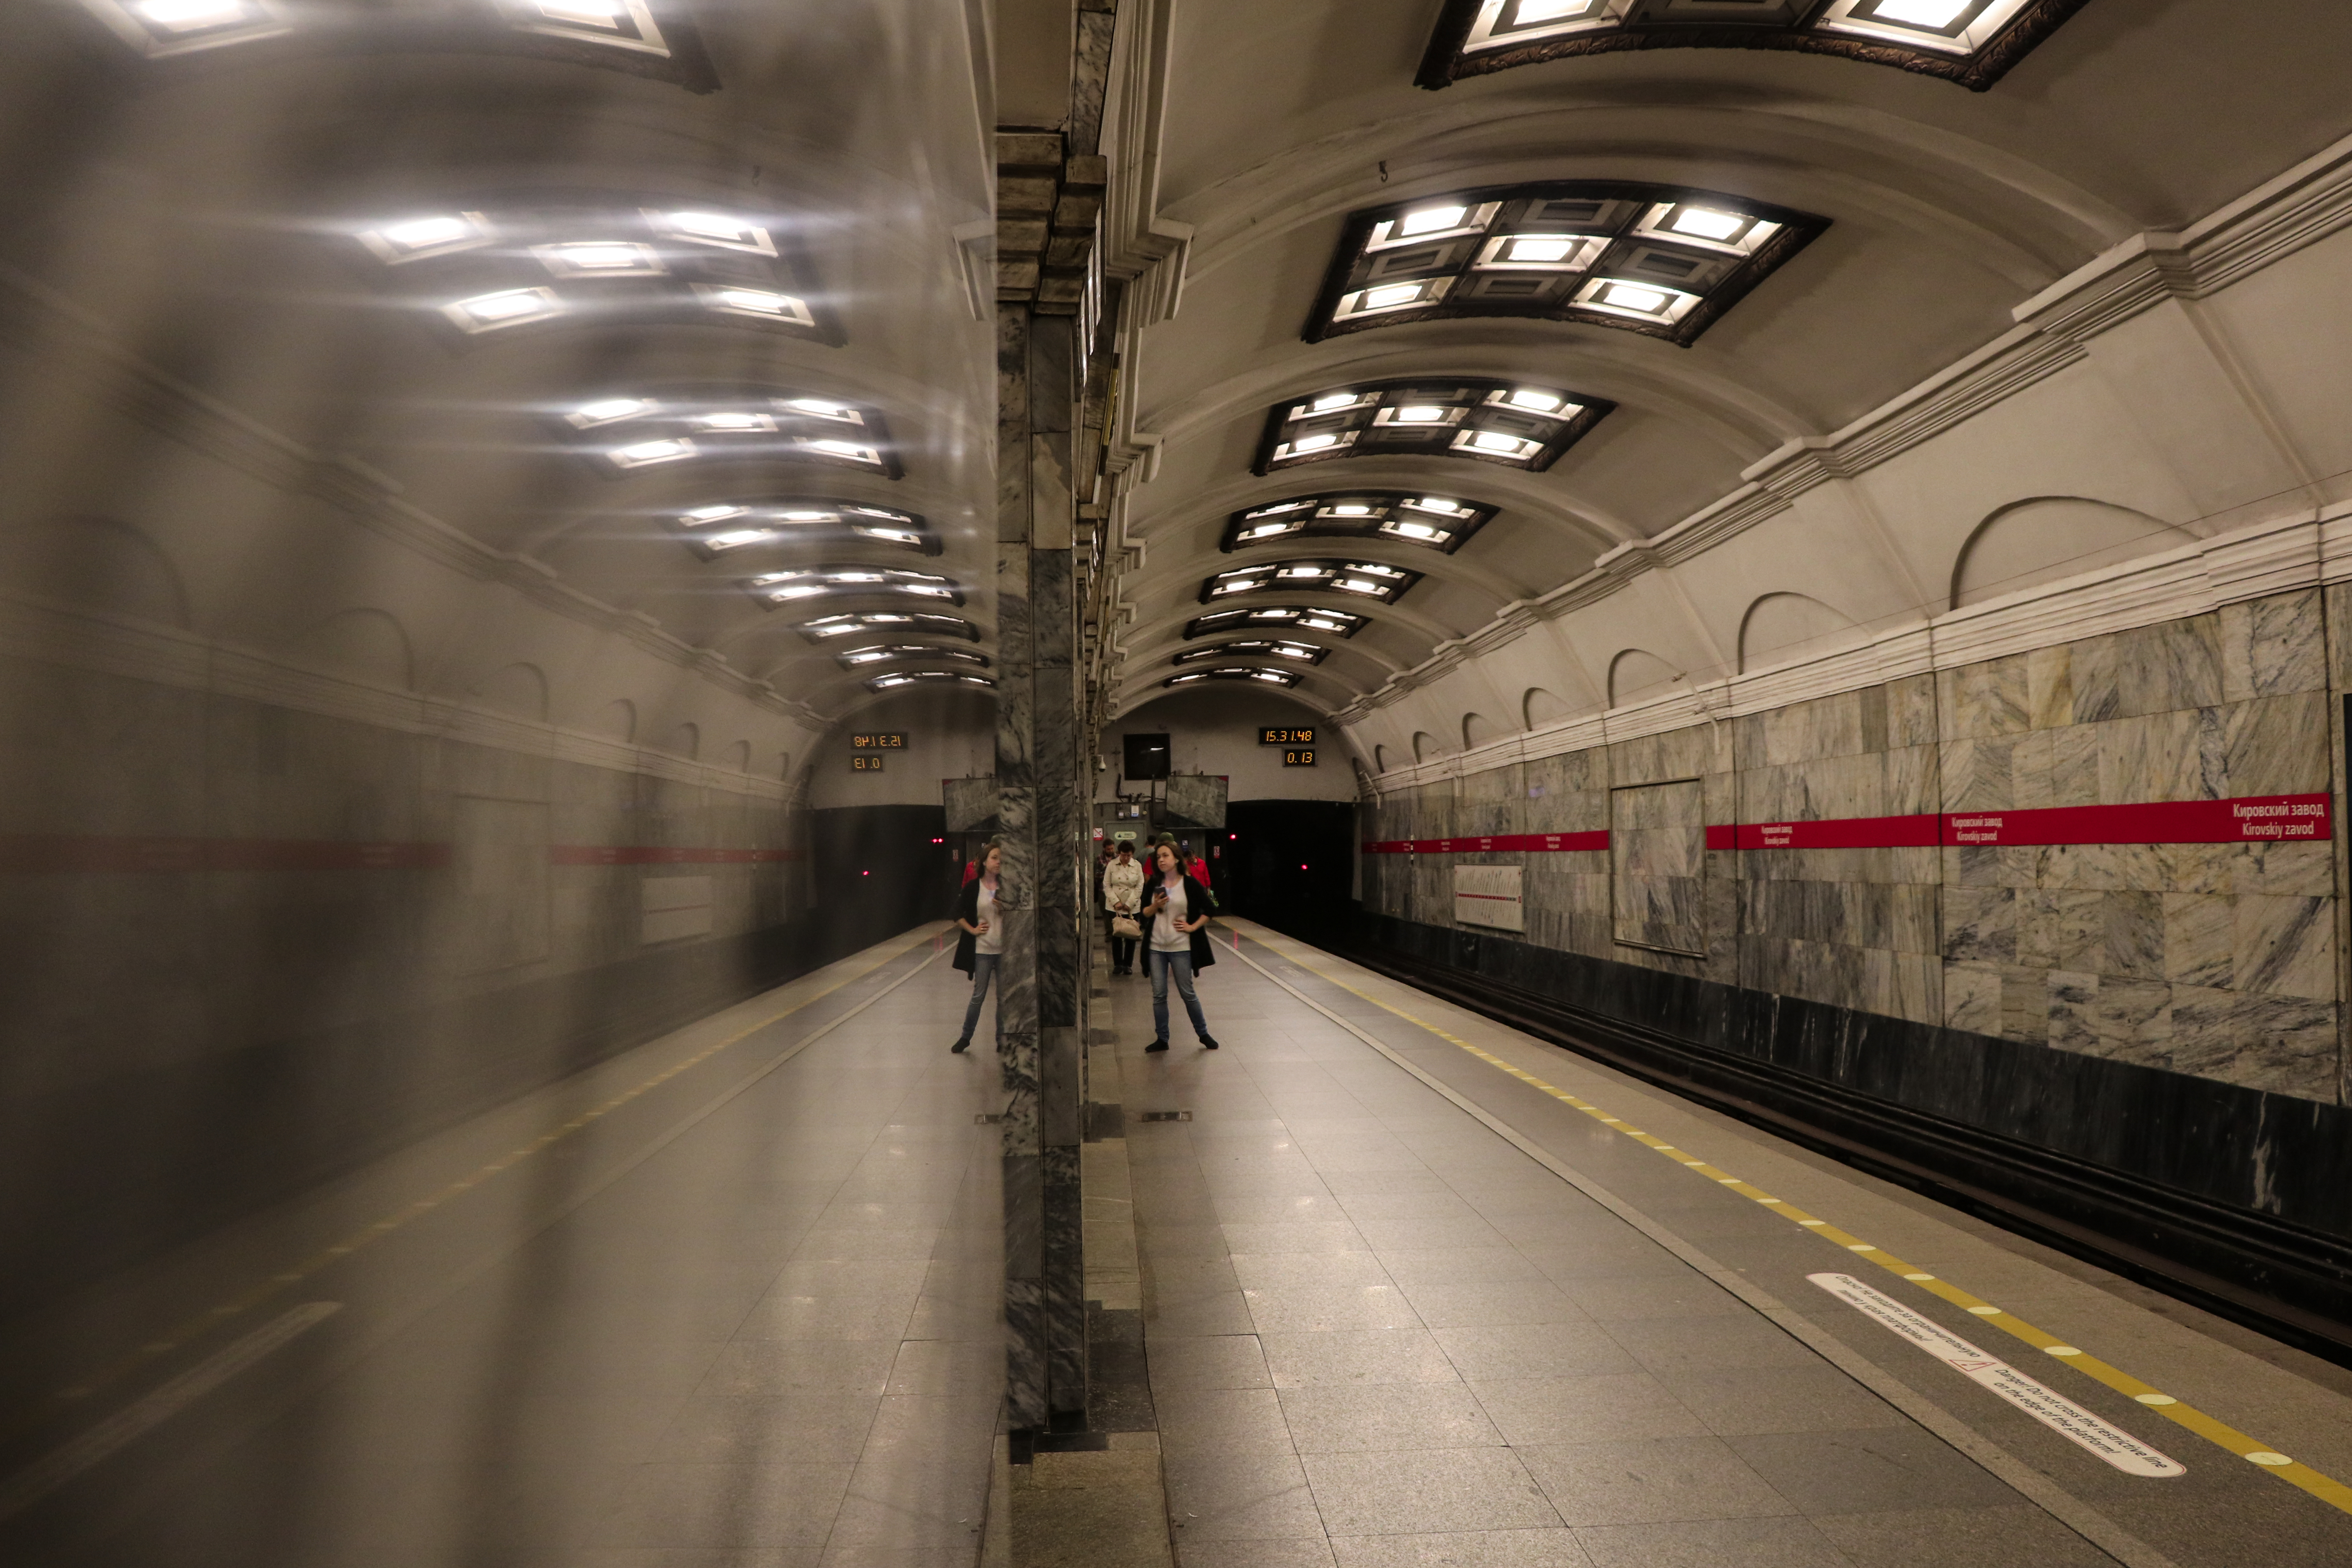 Marbel reflection -Saint Petersburg subway, Canon, Ceiling, Images of reflection, Marble, HQ Photo